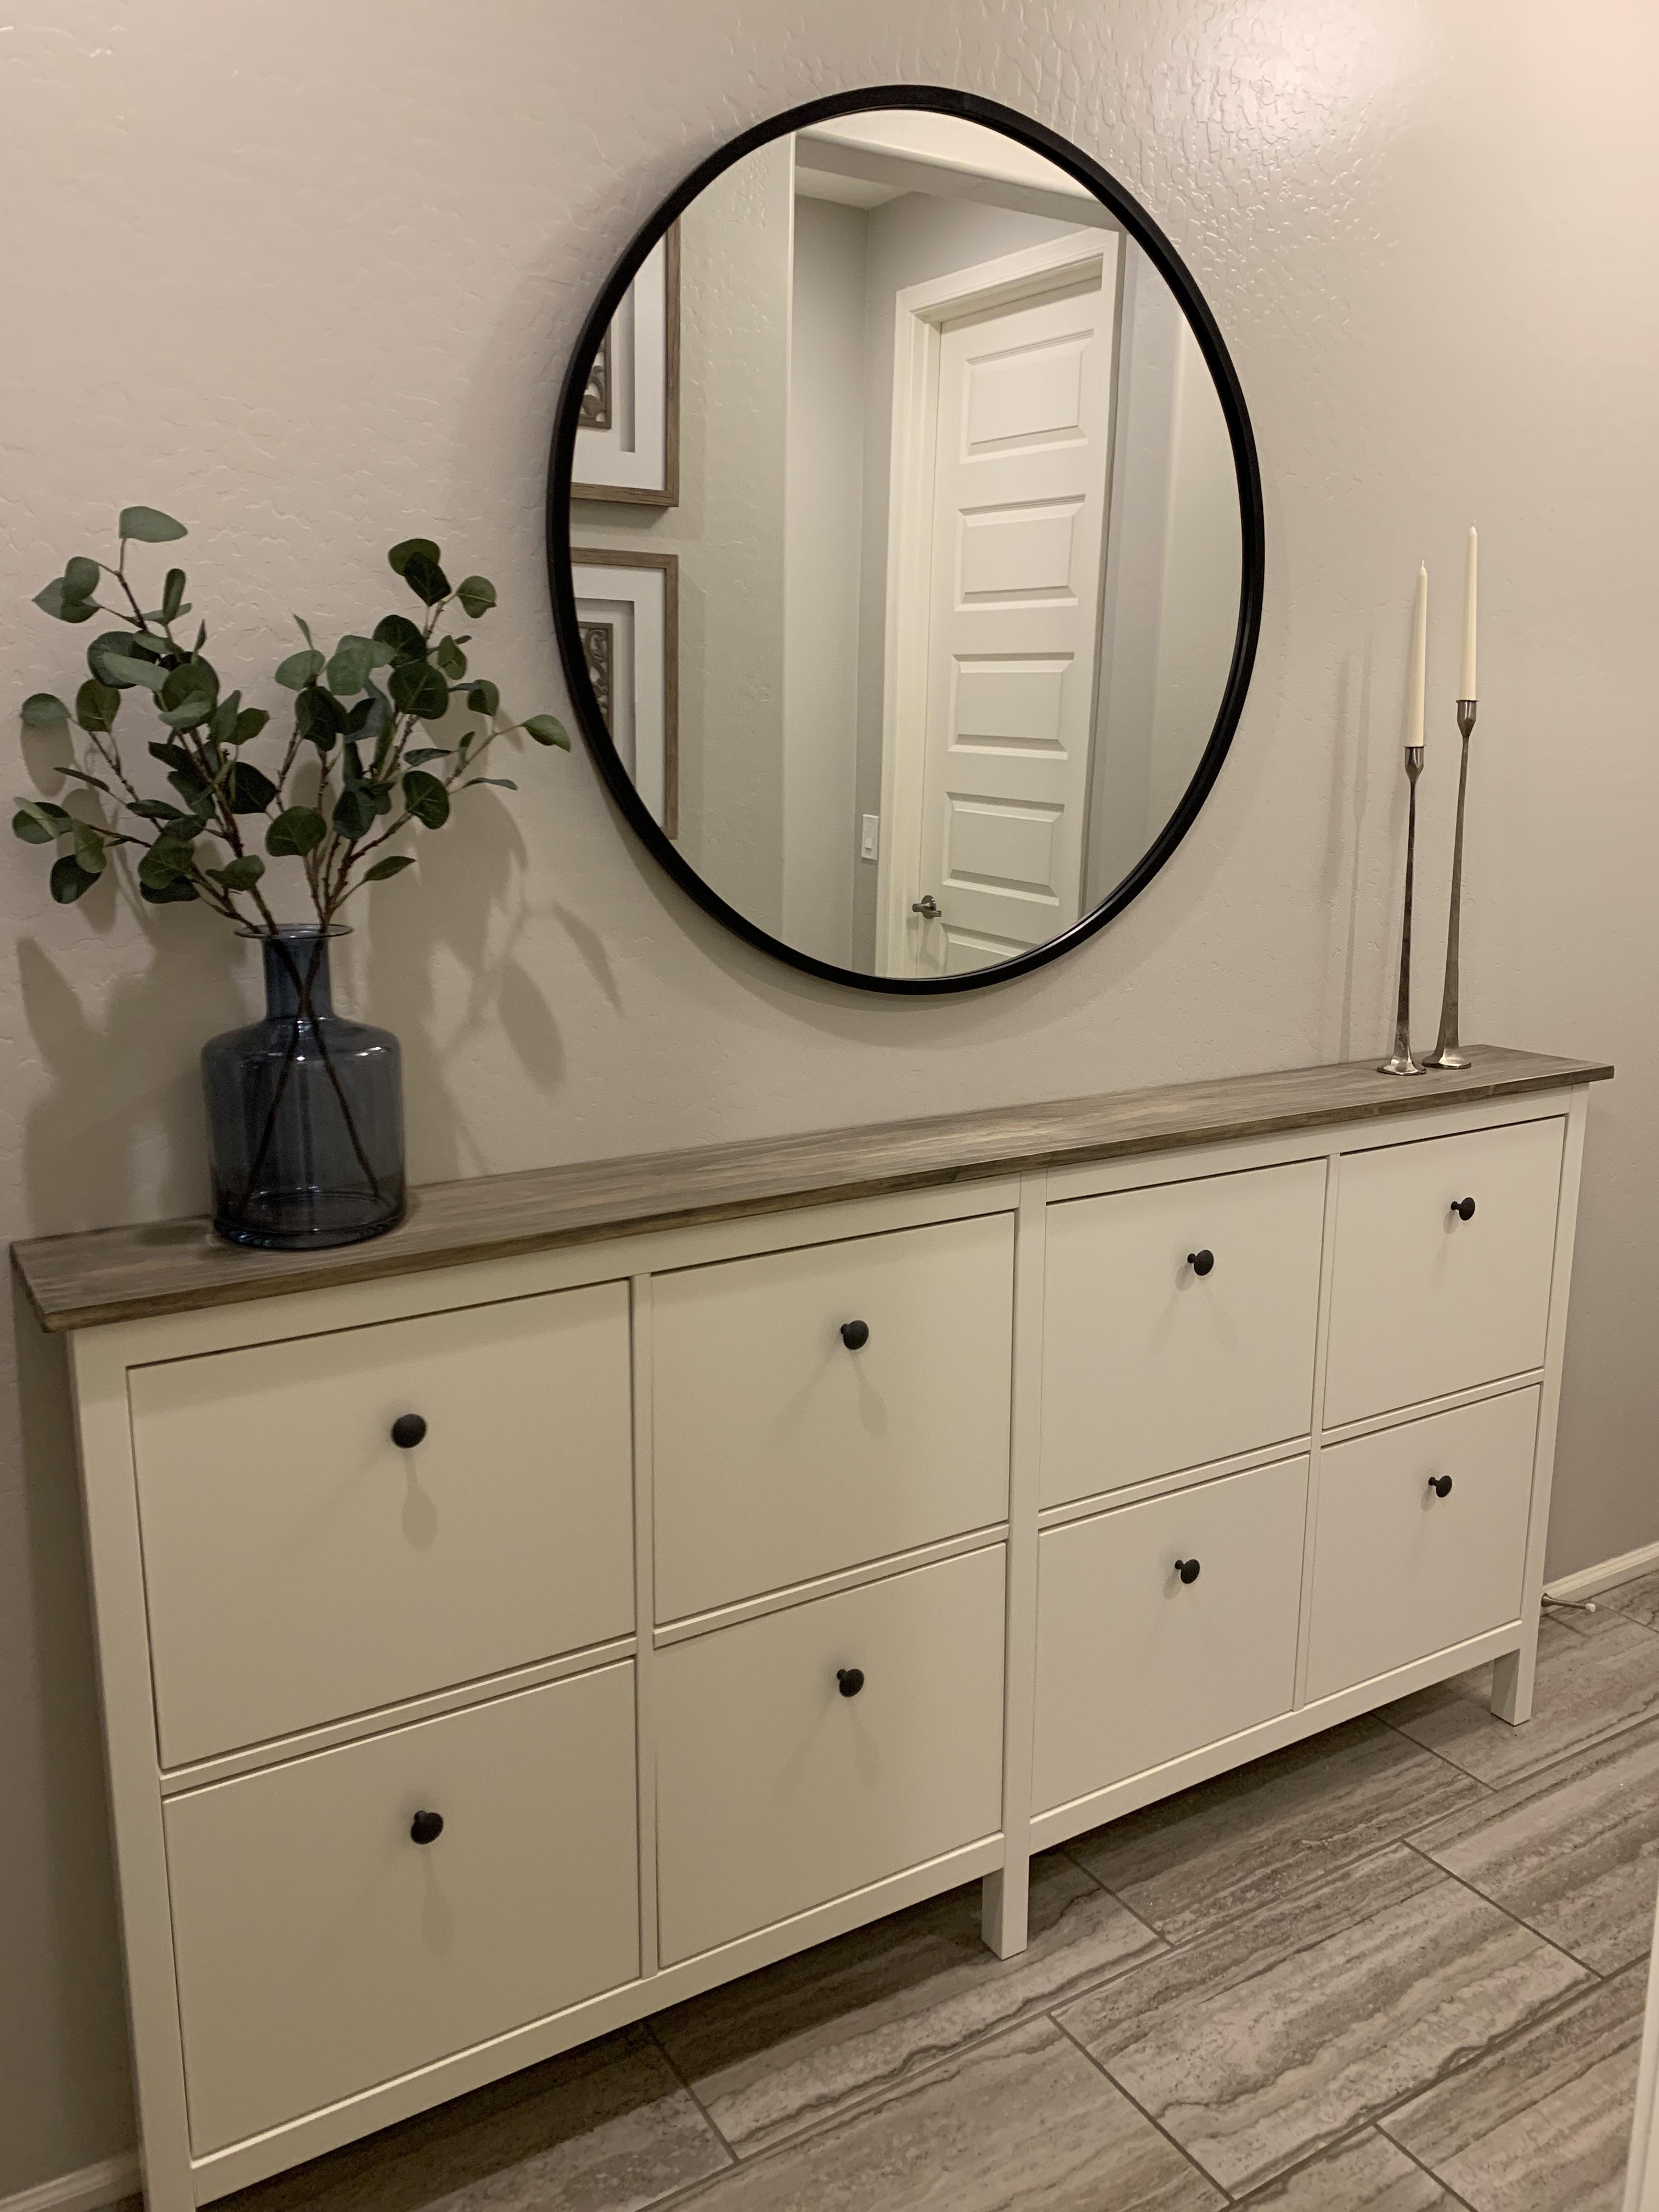 For Our Narrow Entryway We Combined Two Ikea Hemnes Shoe Cabinets And Replaced The Original Tops With A Stained Wood Top I Am So Happy With How This Hack Turned Out